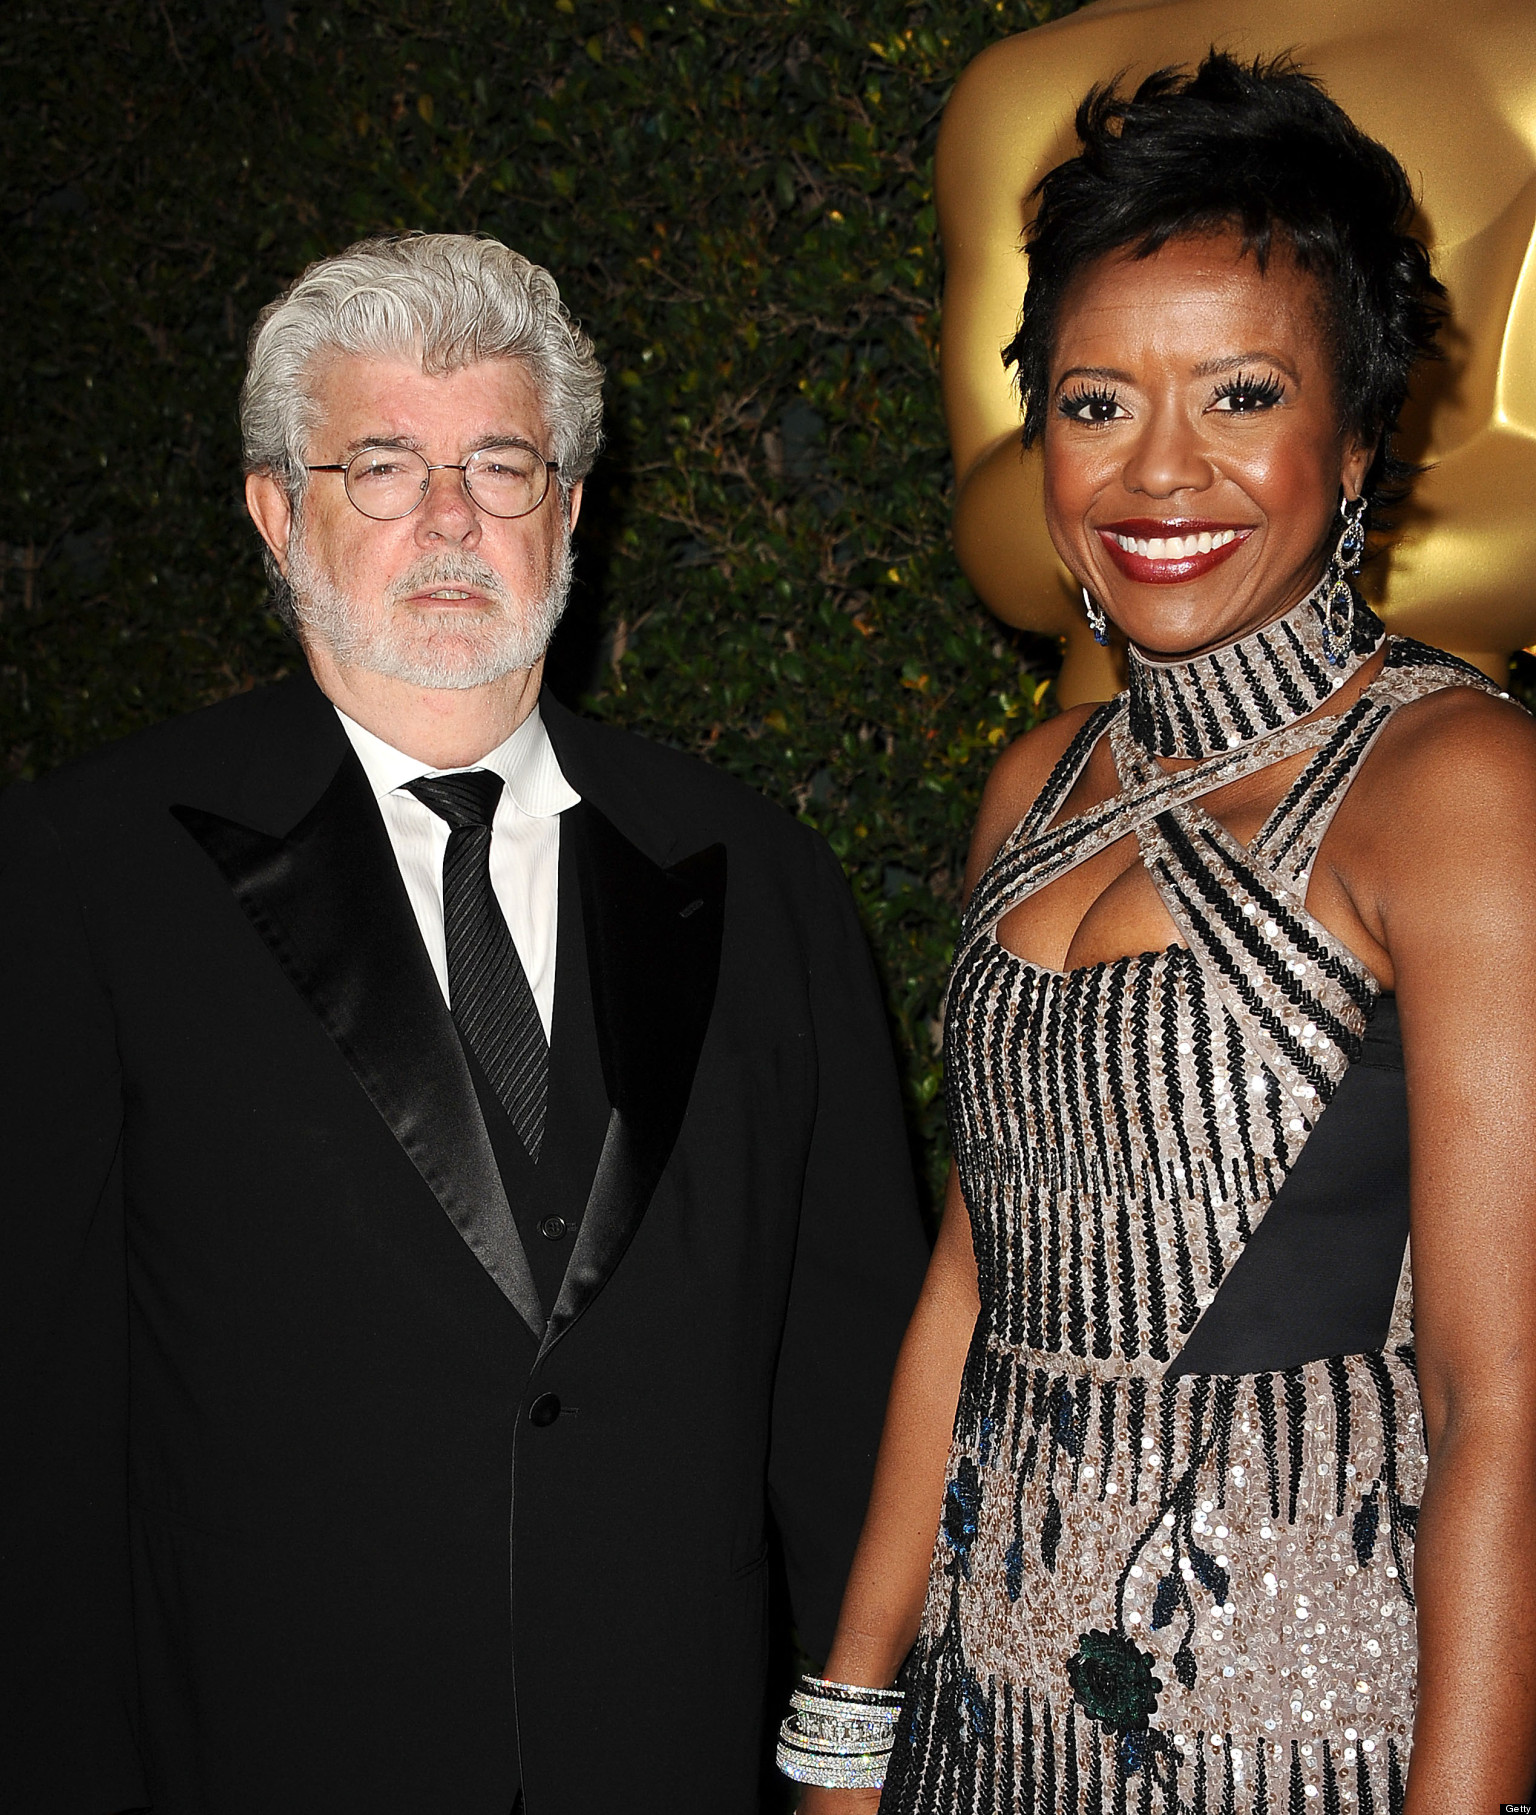 George Lucas, Mellody Hobson Engaged: 'Star Wars' Director